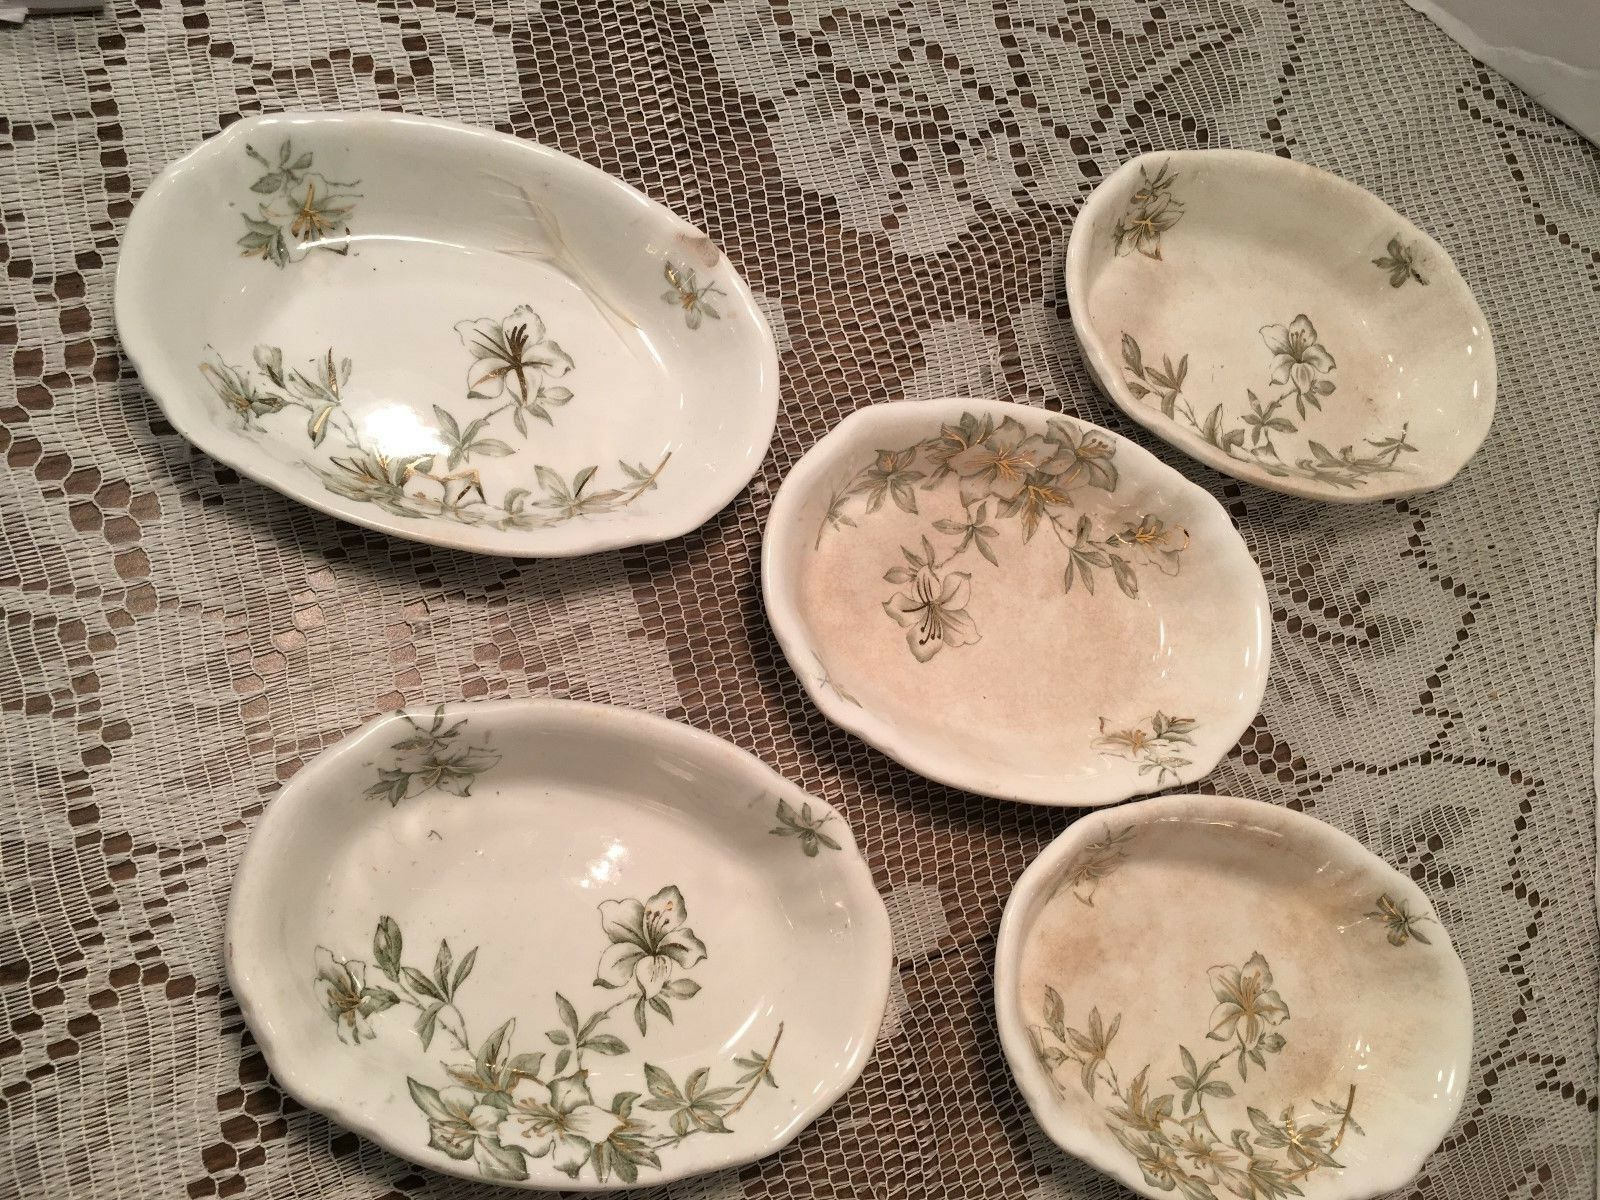 SET OF 5 BOWLS AZALEA PORCELAINE DE TERRE BY JOHN EDWARDS ENGLAND - $9.99